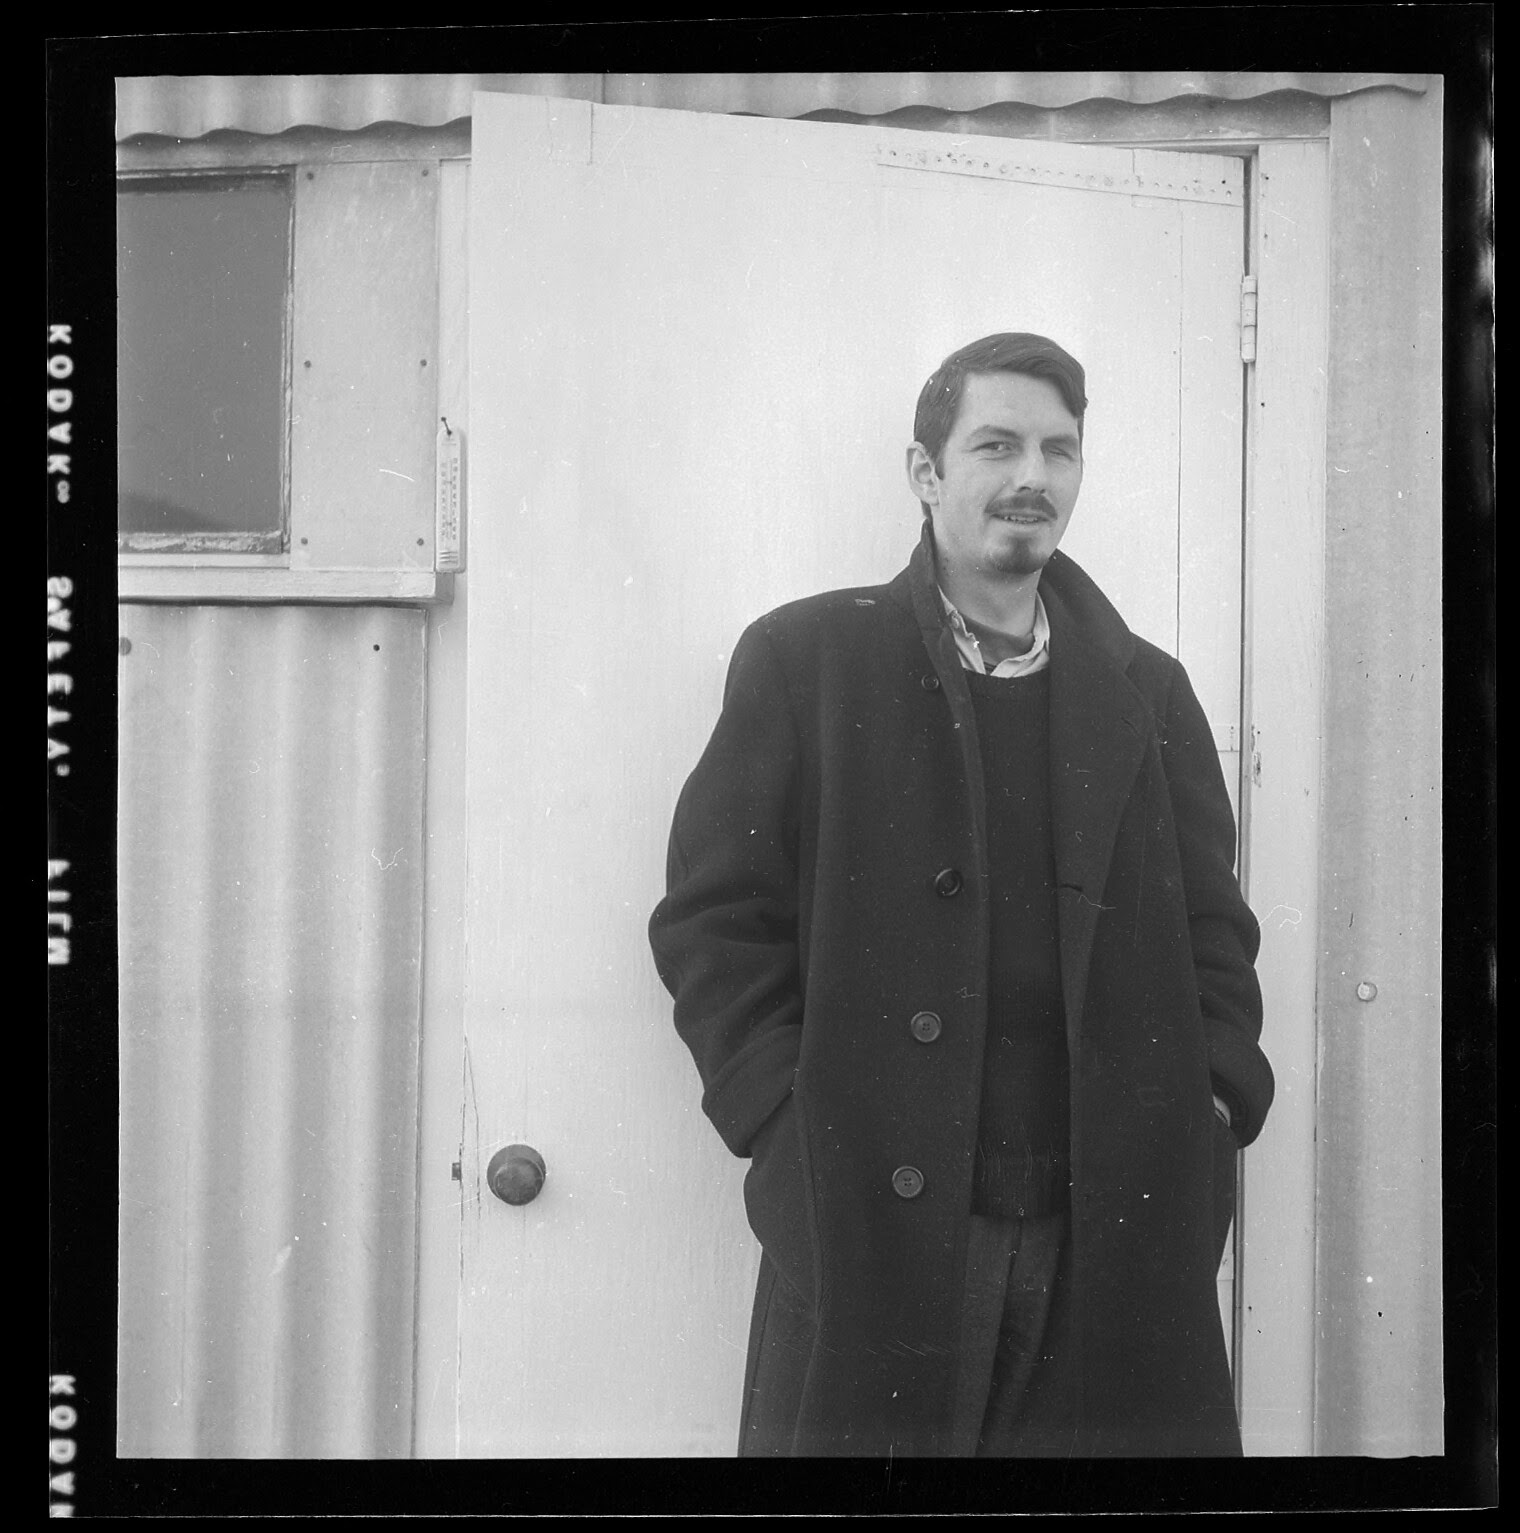 robert creeley collected essays Many different kinds of heat show in the poetry collected here: heat of friendship ( robert creeley), heat of wit (carolyn kizer), heat of the blues (sonia sanchez),.